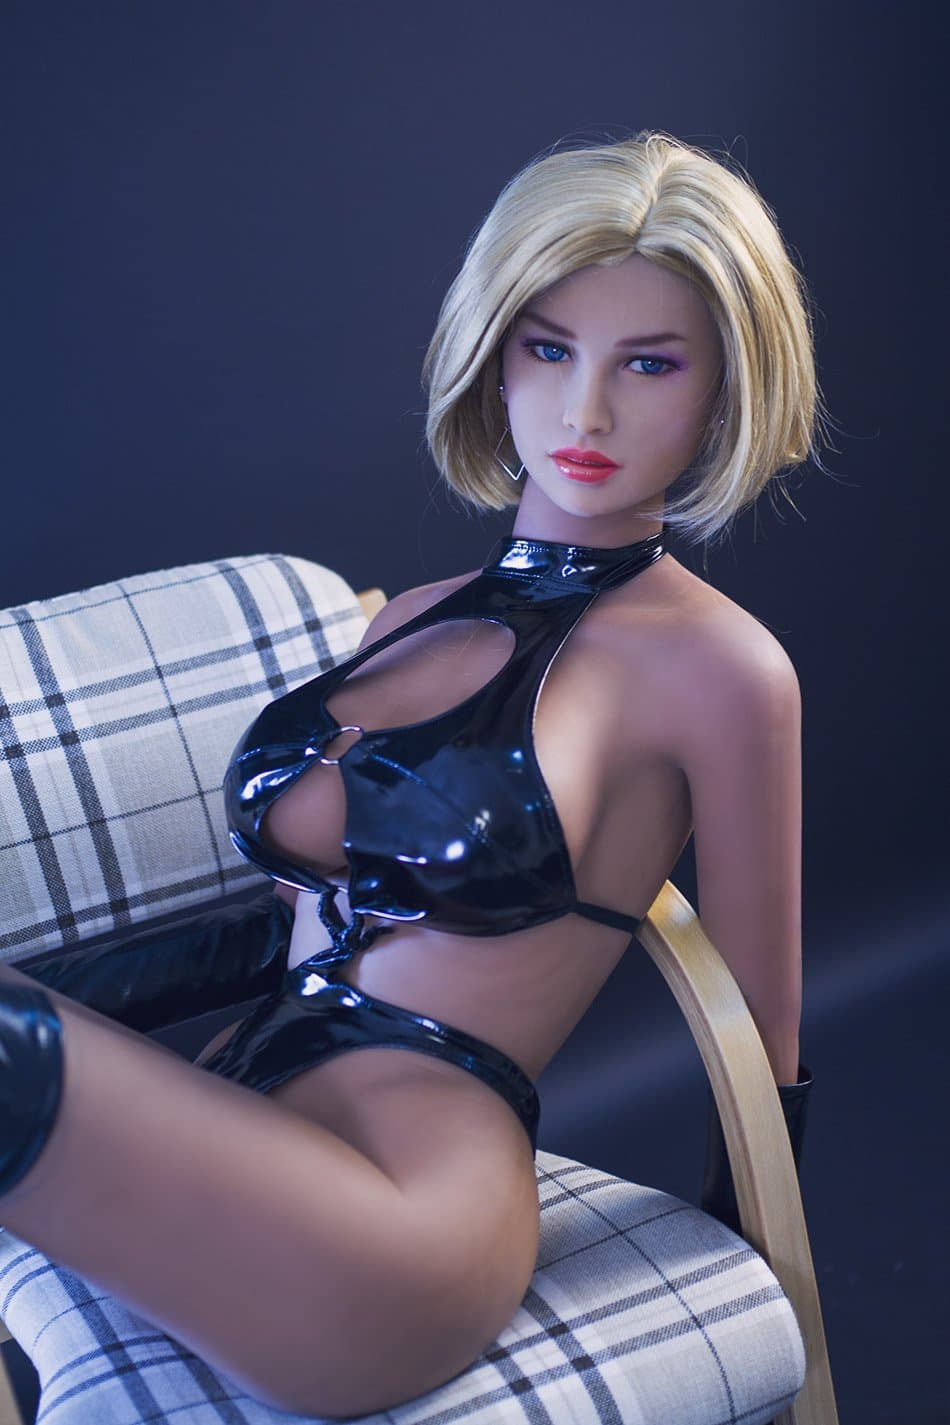 mads 165cm blonde jy big boobs athletic tpe sex doll(7)